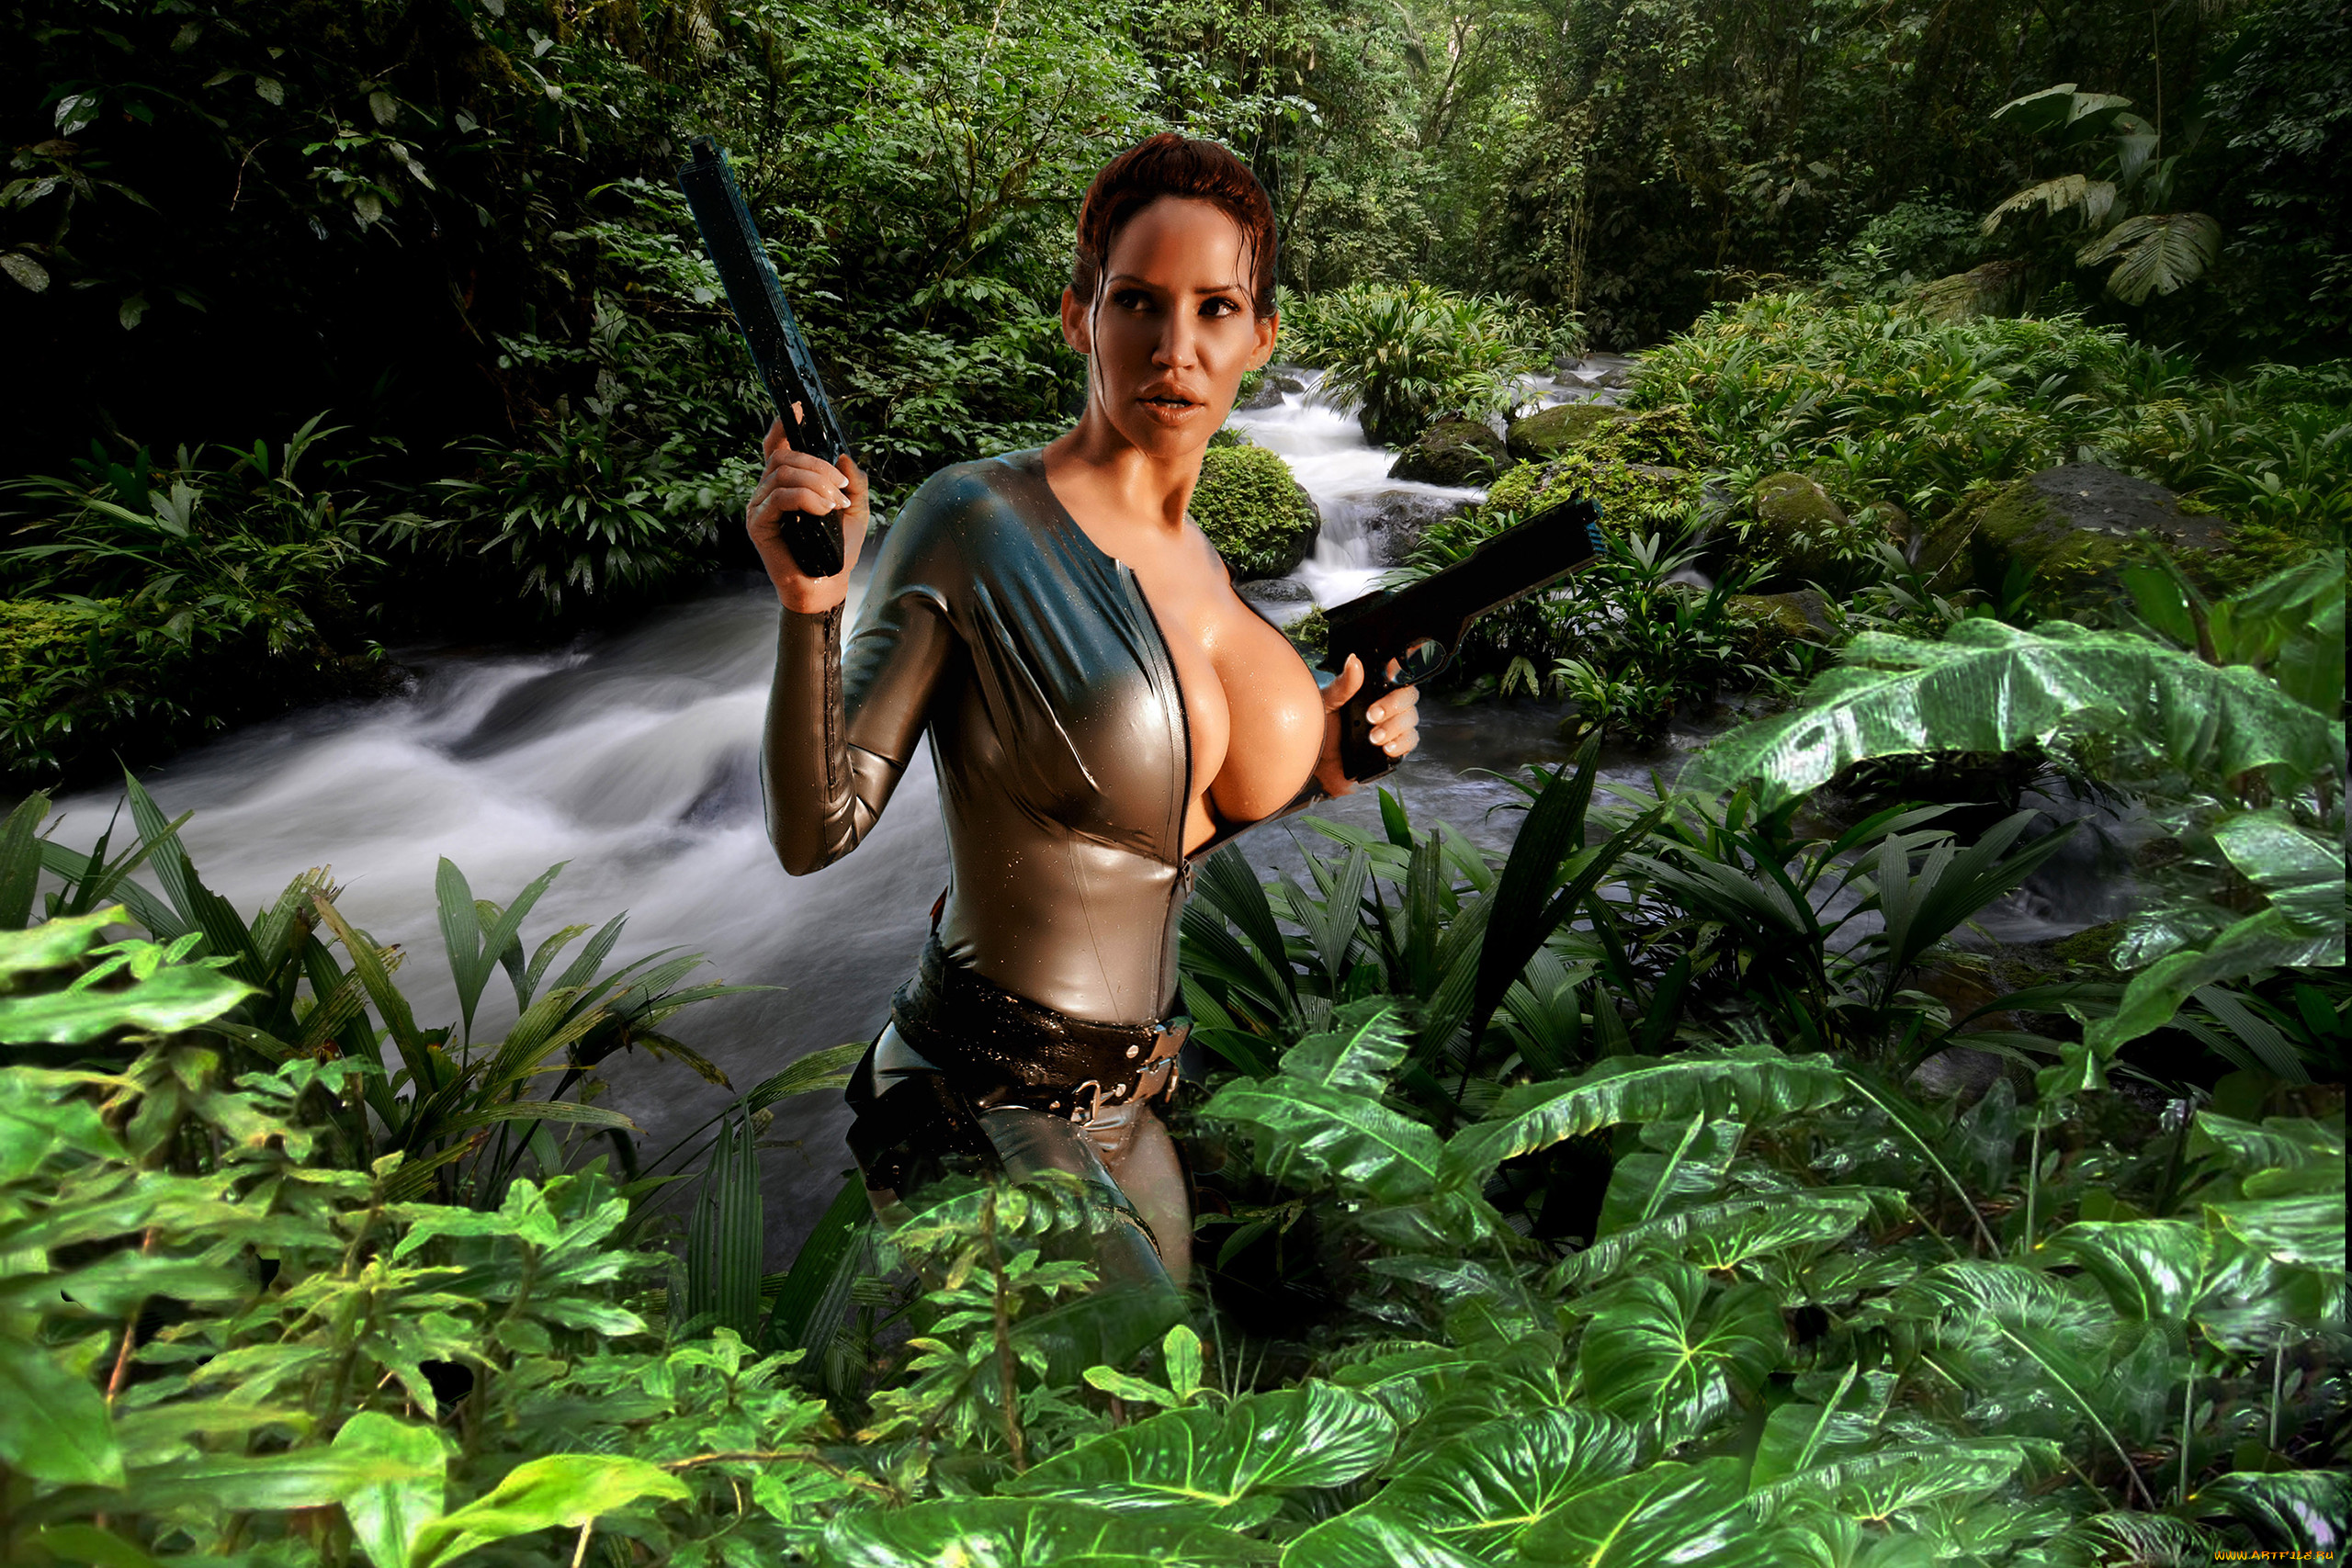 3d lara croft in trouble adult image